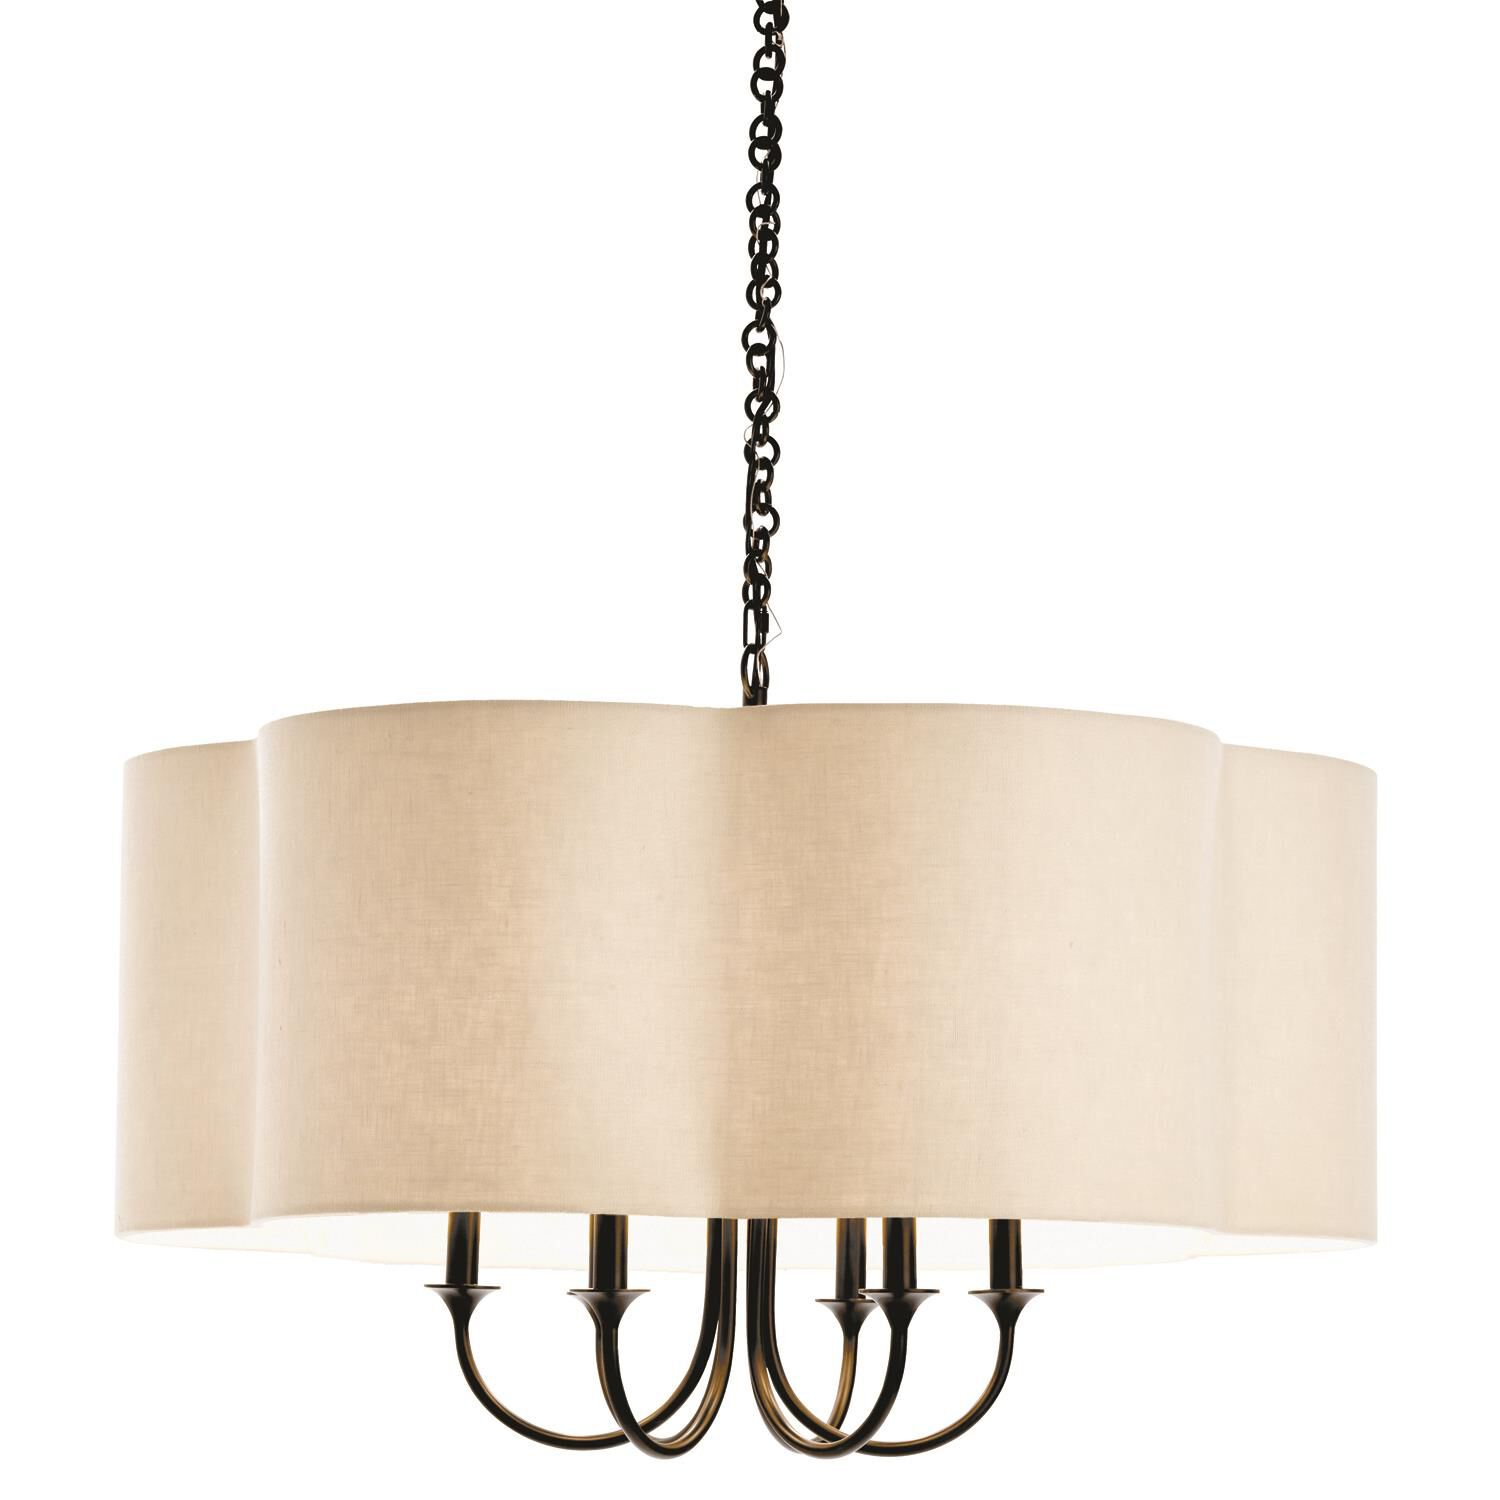 Arteriors Home Rittenhouse 42 Inch 6 Light Chandelier Rittenhouse - 89421 - Transitional Chandelier